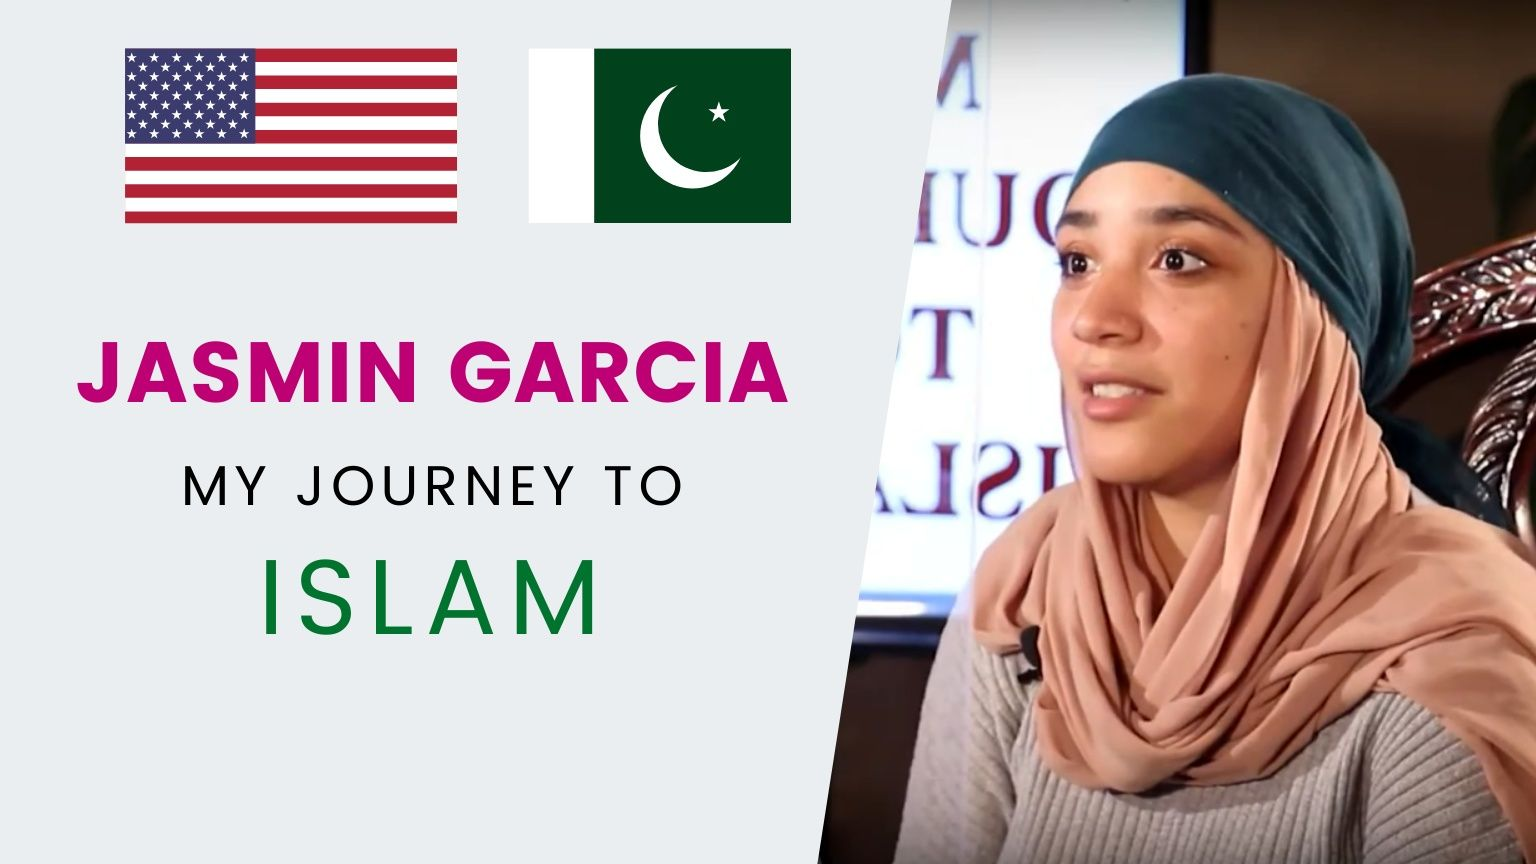 JASMIN GARCIA | My search for God led me to Islam